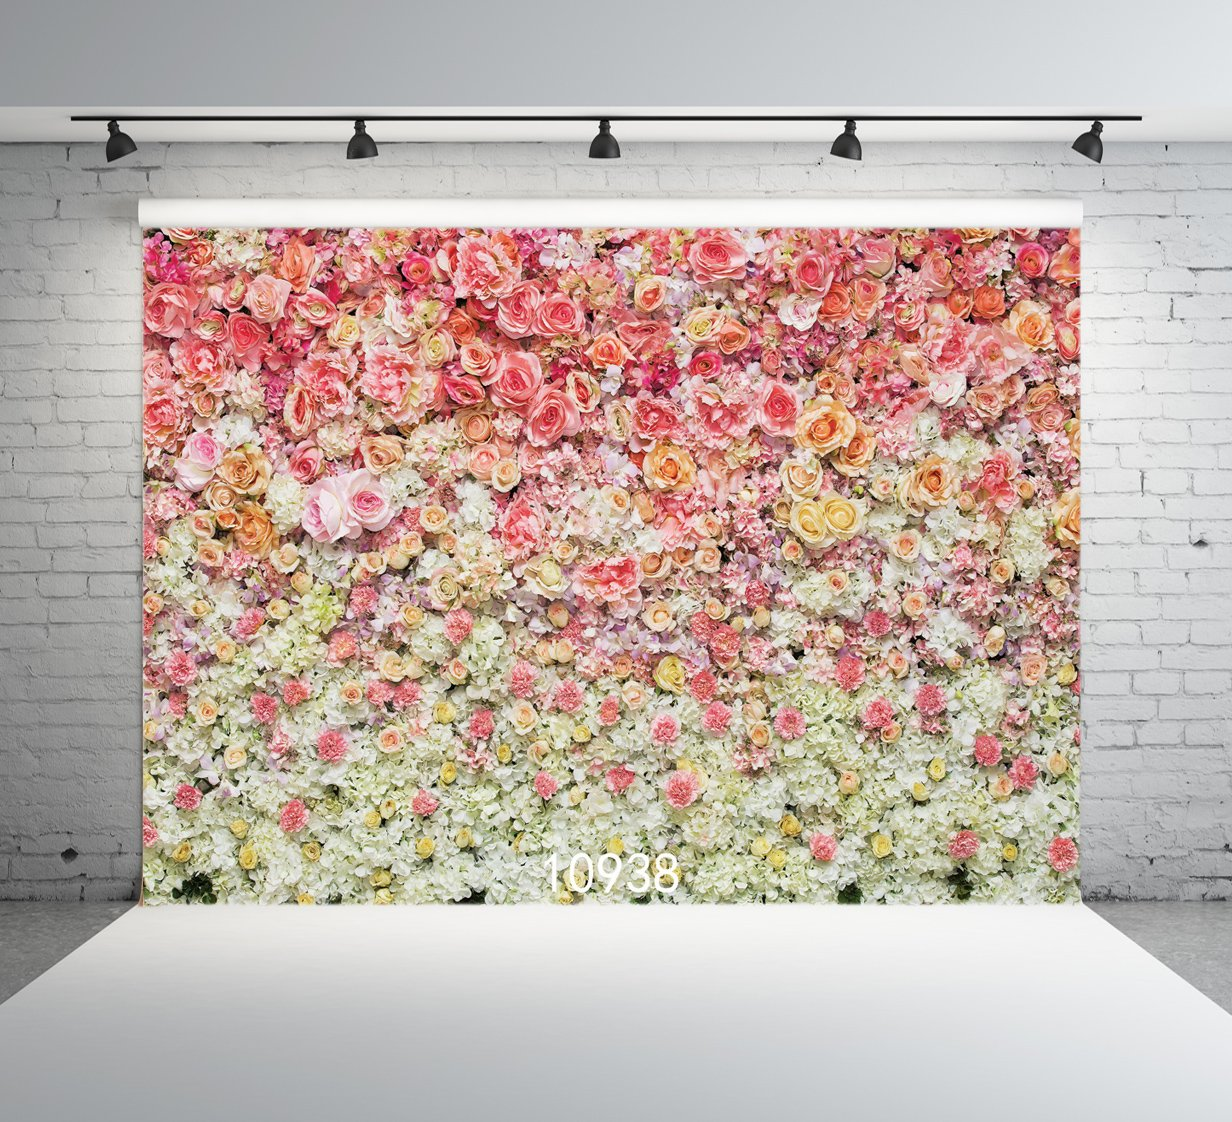 SJOLOON 7X5ft Mother's Day Backdrop Spring Floral Backdrop Wedding Backdrops Pink Red Rose Flower Photography Backdrop Studio Photographers Background Props 10938